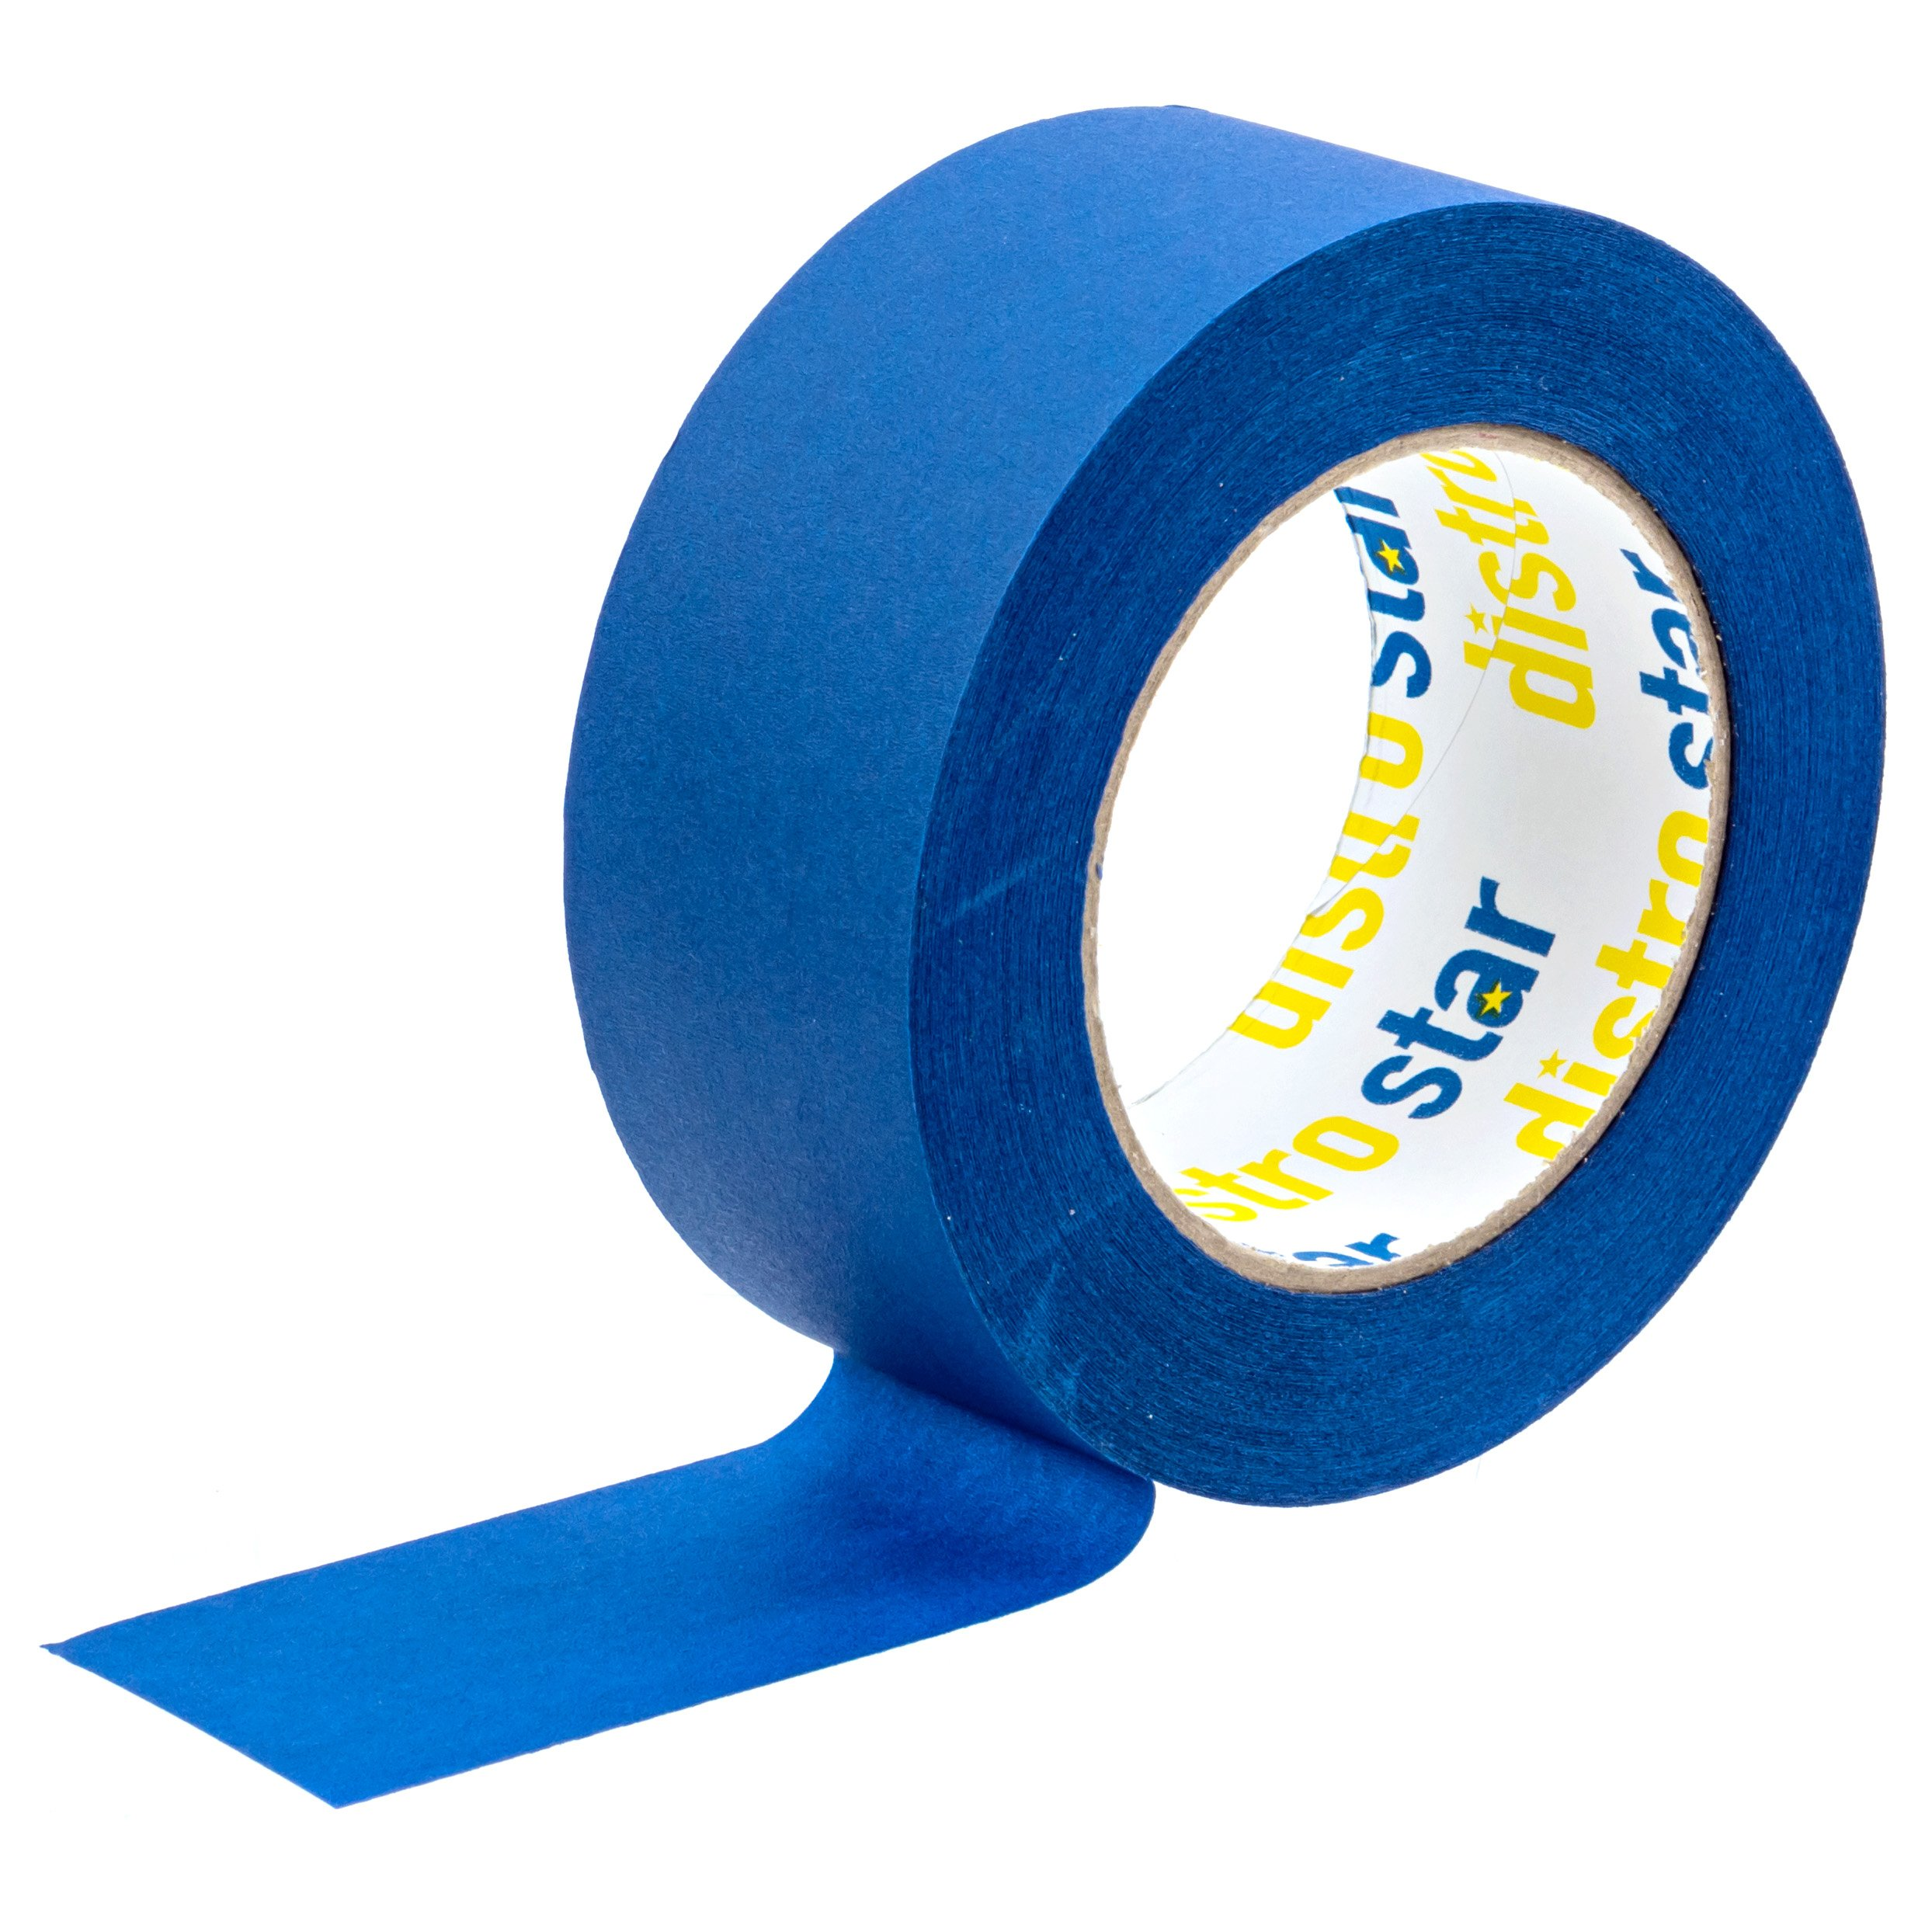 Painter's Tape Blue 2 inch (1.88 in x 60 yd) 6 Roll Contractor Pack UV Protection 21 Day Easy Peel Perfect Lines Humidity Resistant Paint Like A PRO Professional Painter Premium Quality Masking Value by Distro Star (Image #3)